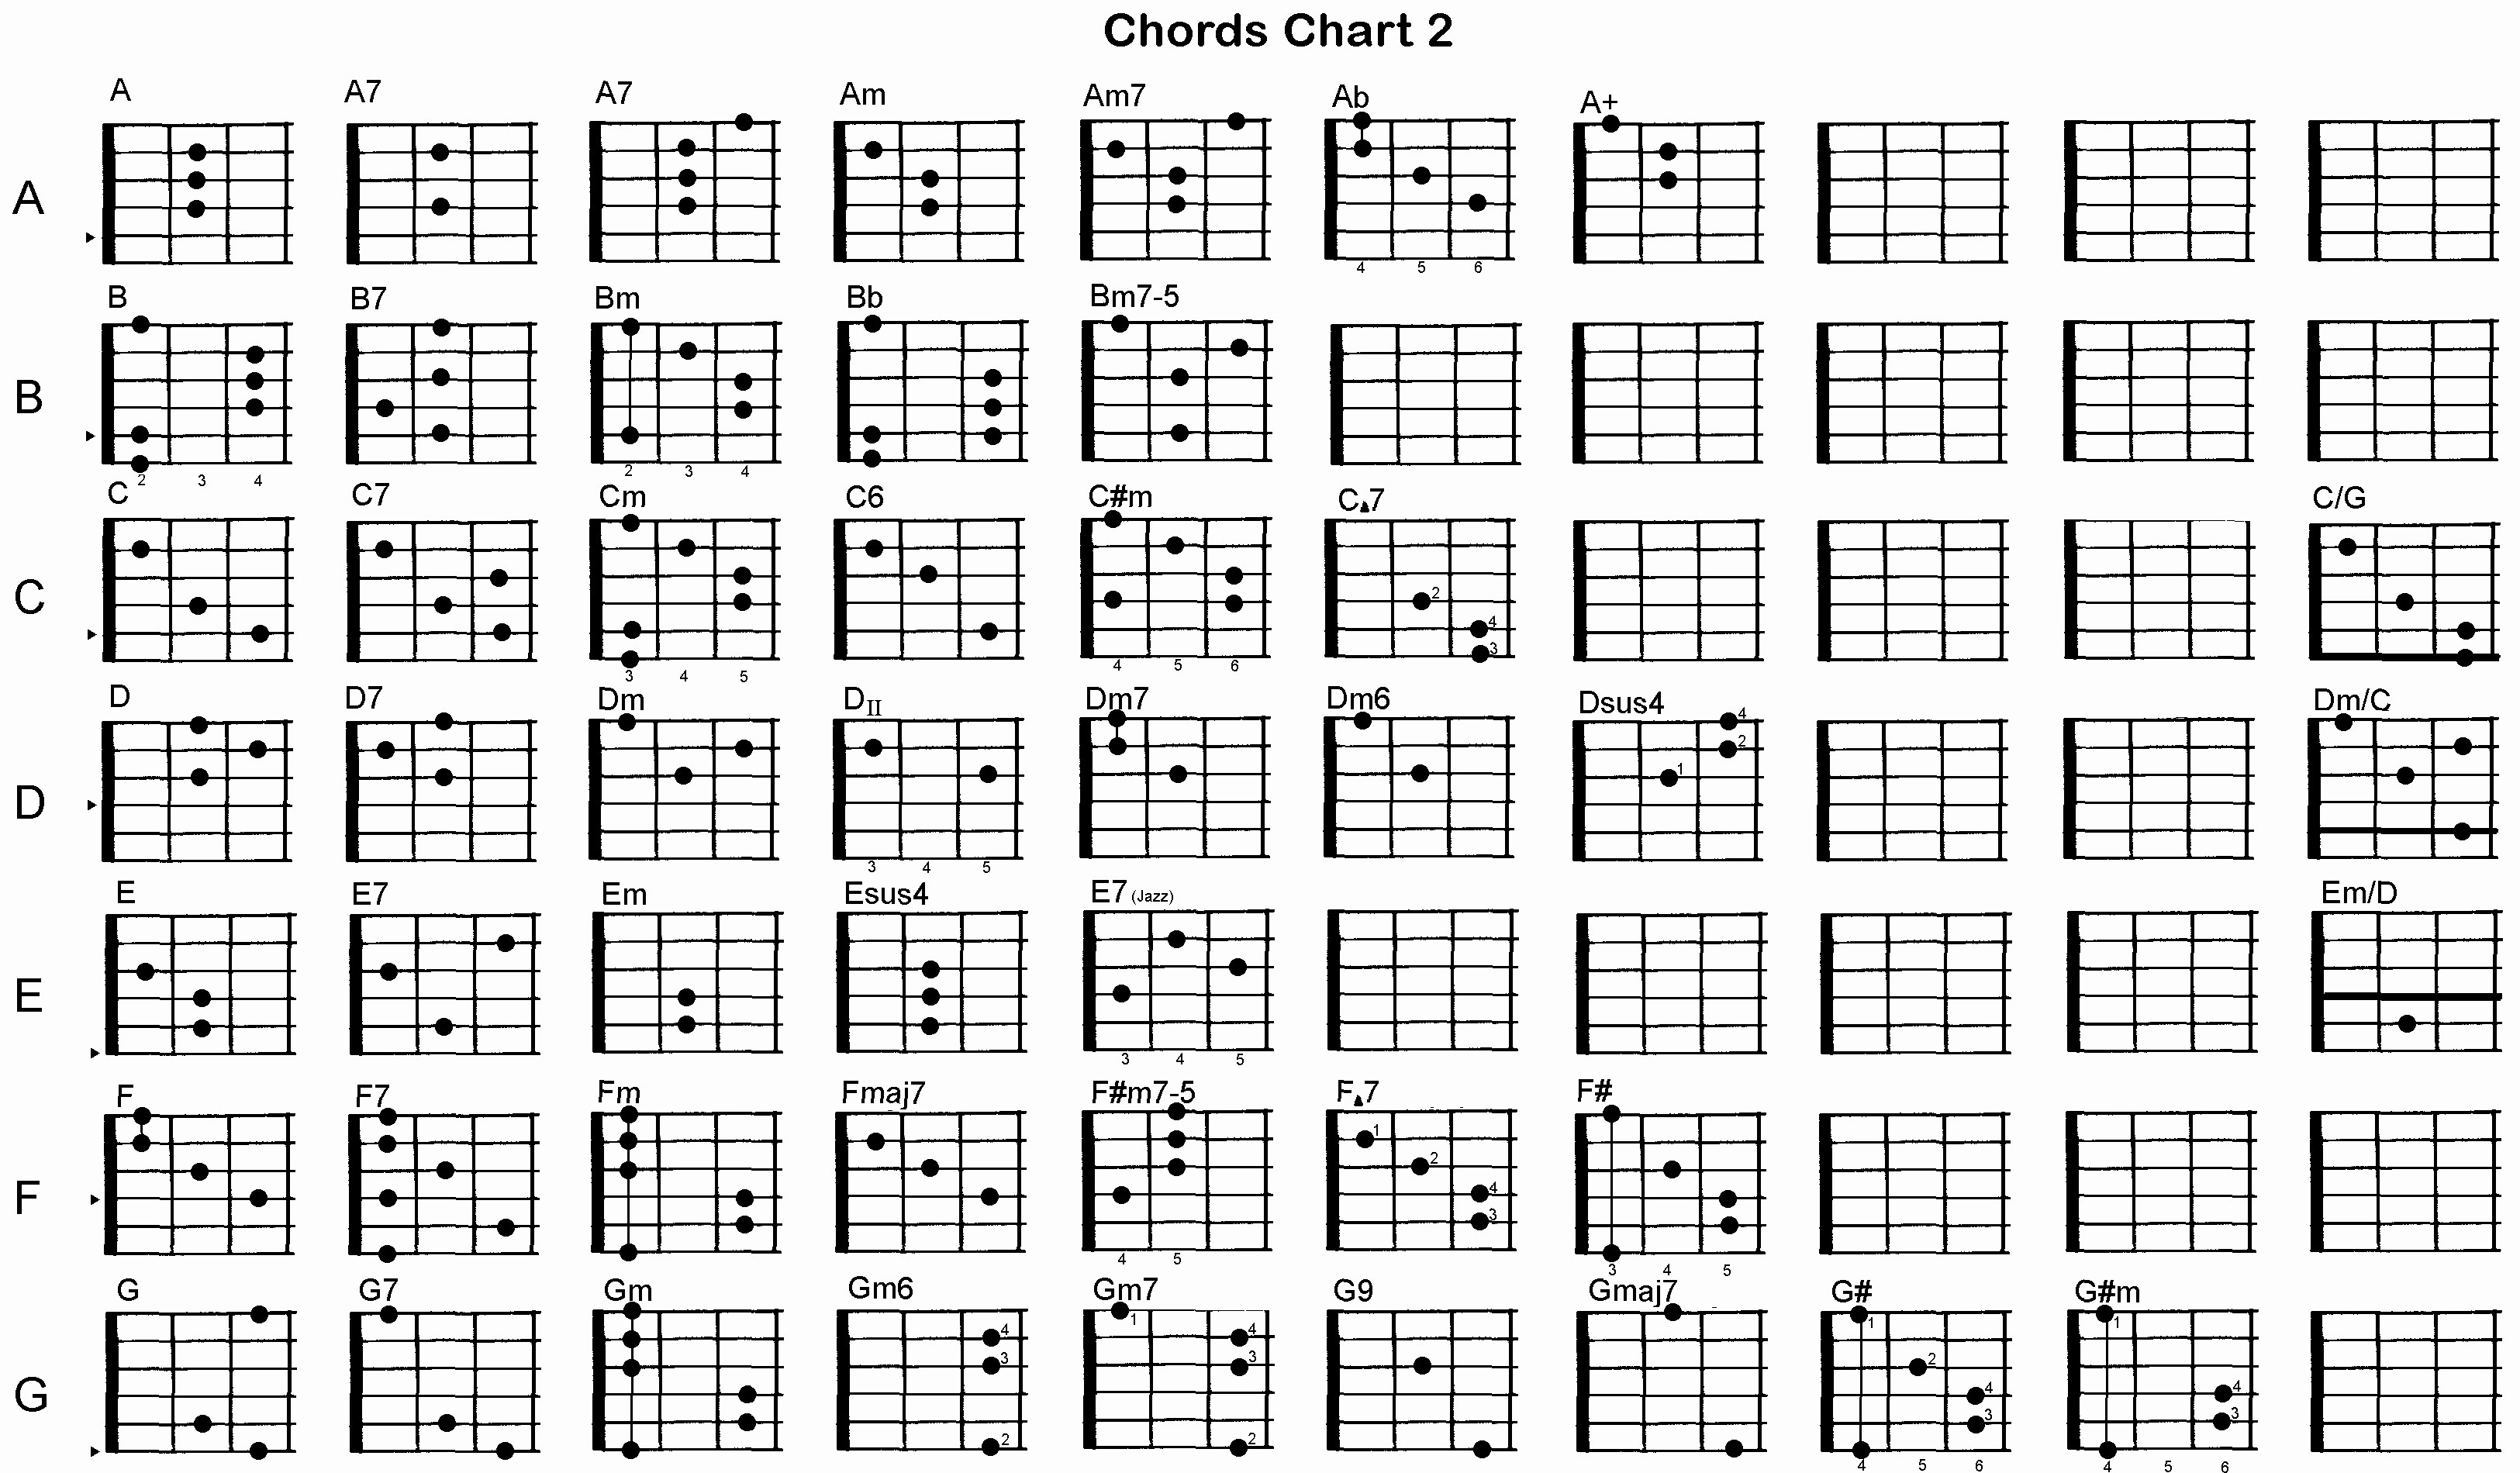 Free Printable Bass Guitar Chord Chart | Download Them Or Print - Free Printable Bass Guitar Chord Chart